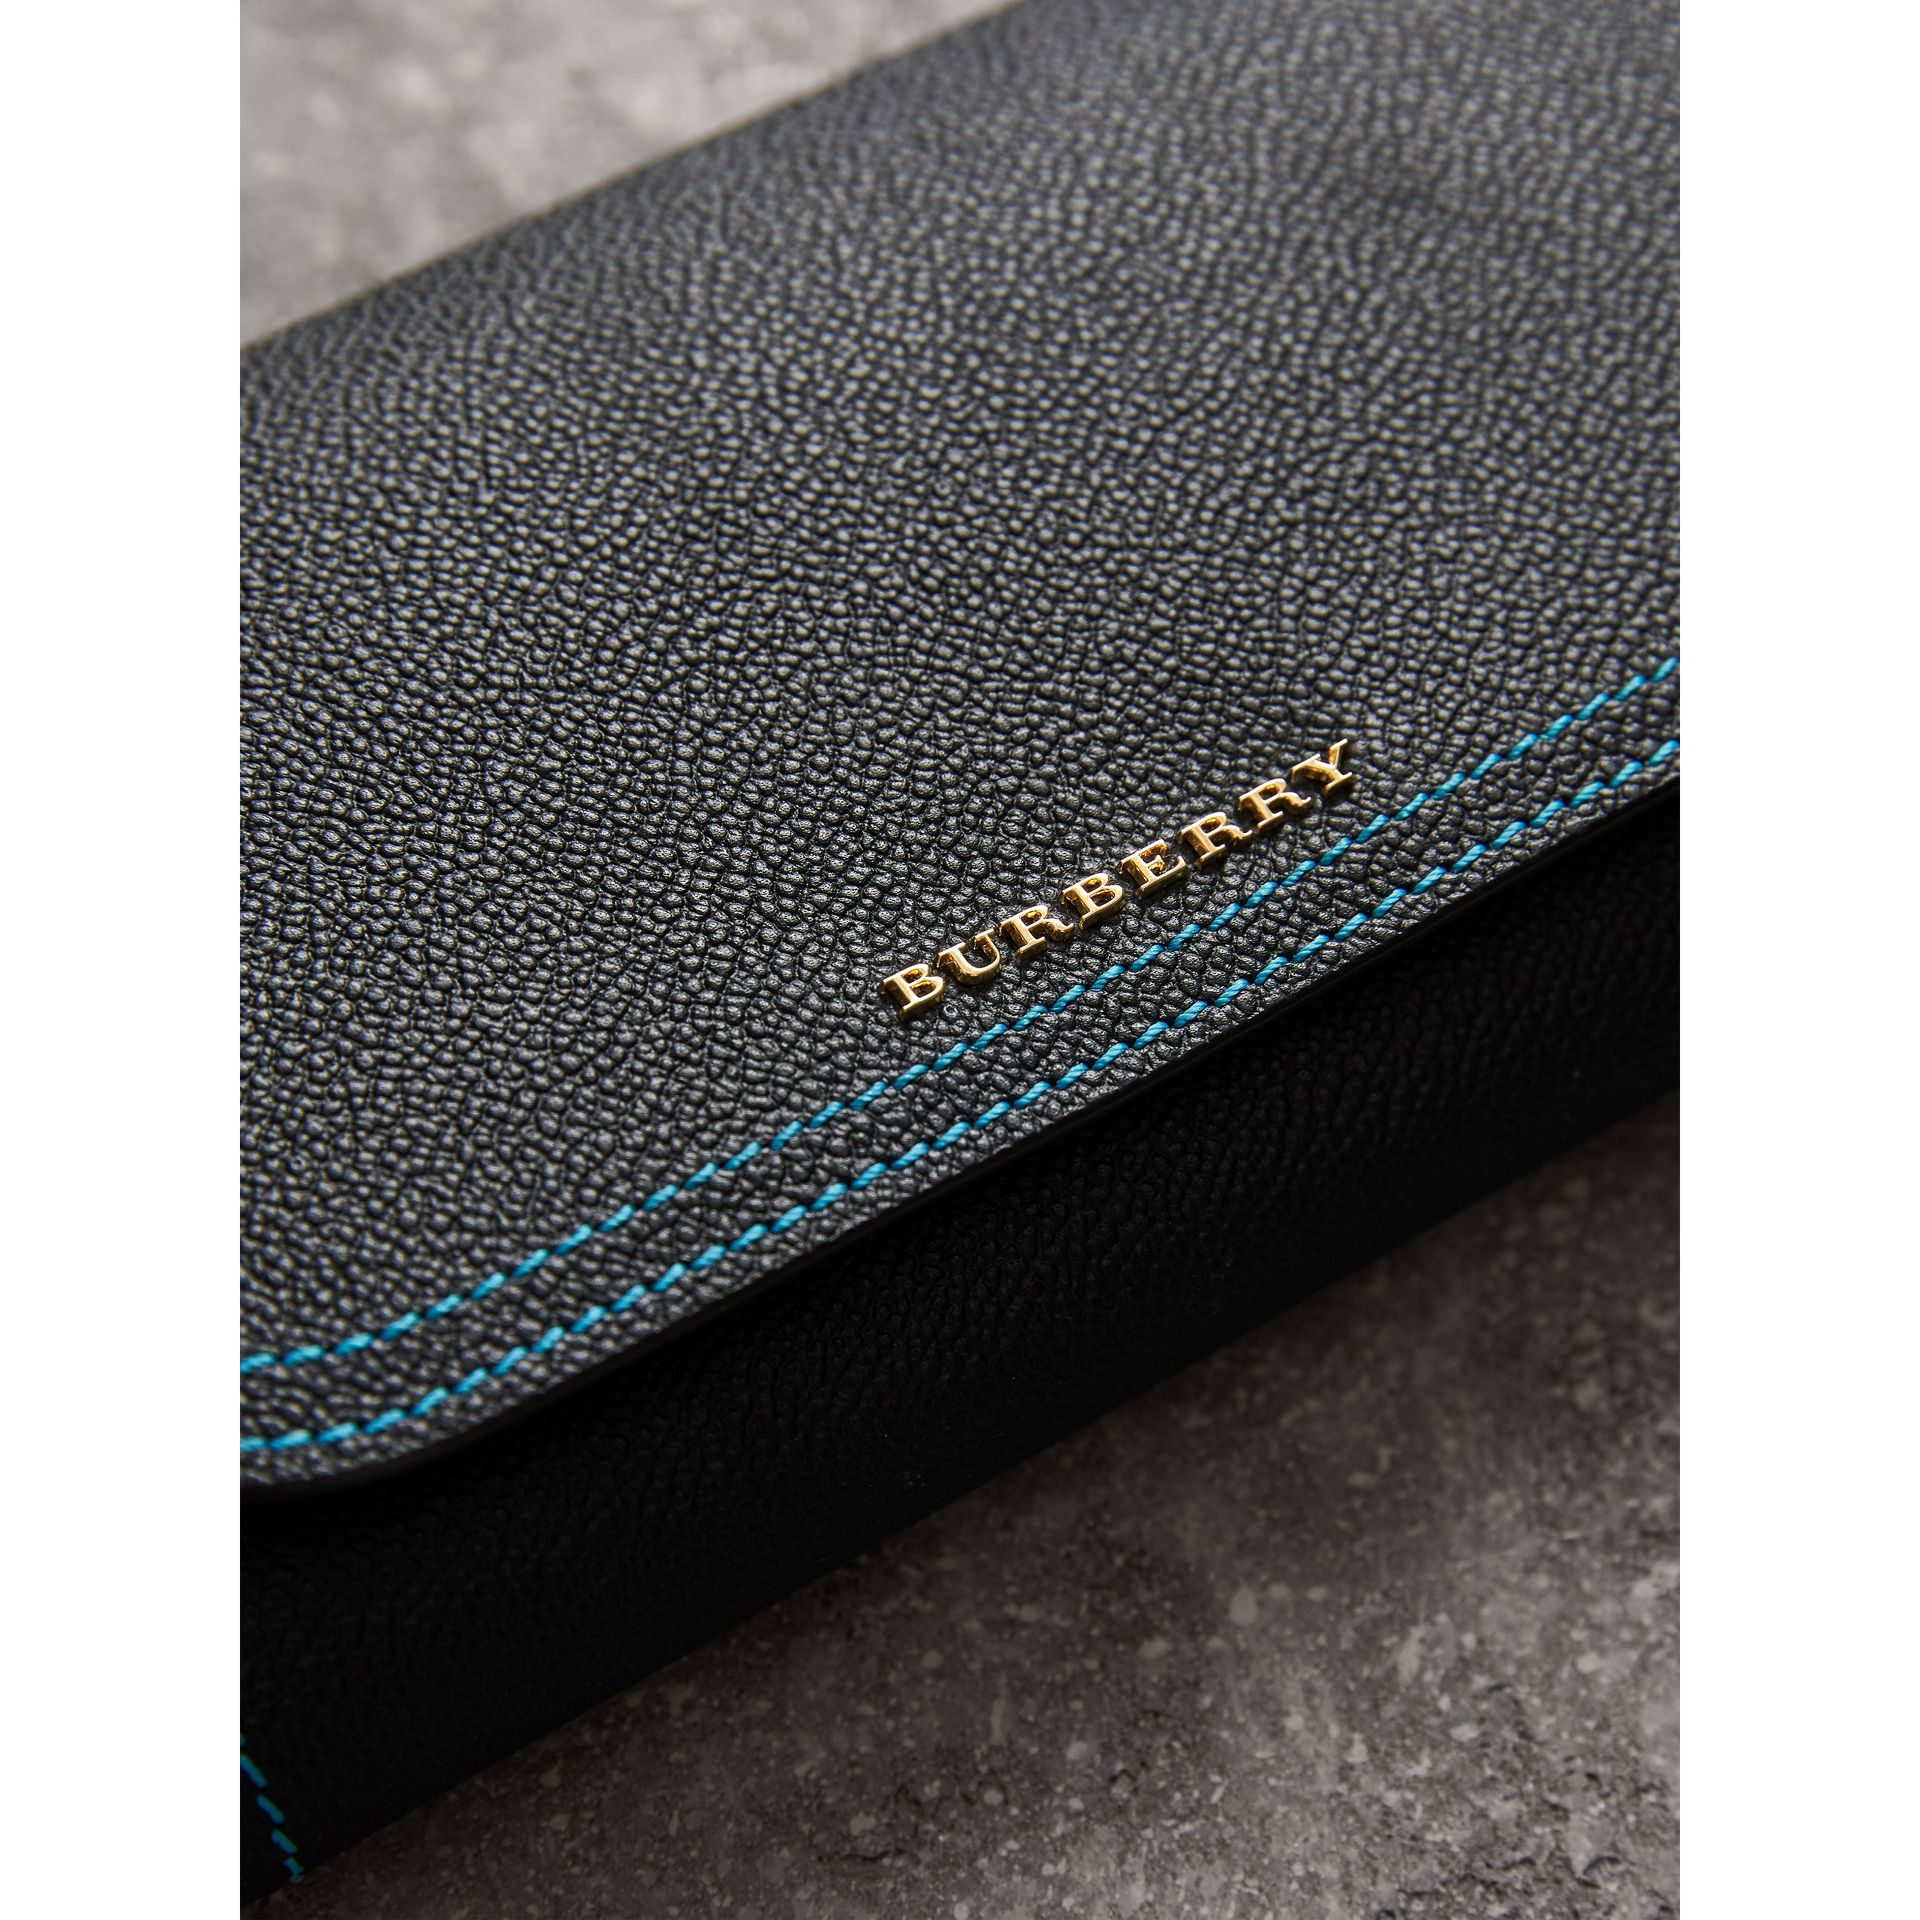 Topstitch Detail Leather Wallet with Detachable Strap in Black/multicolour - Women | Burberry Australia - gallery image 2